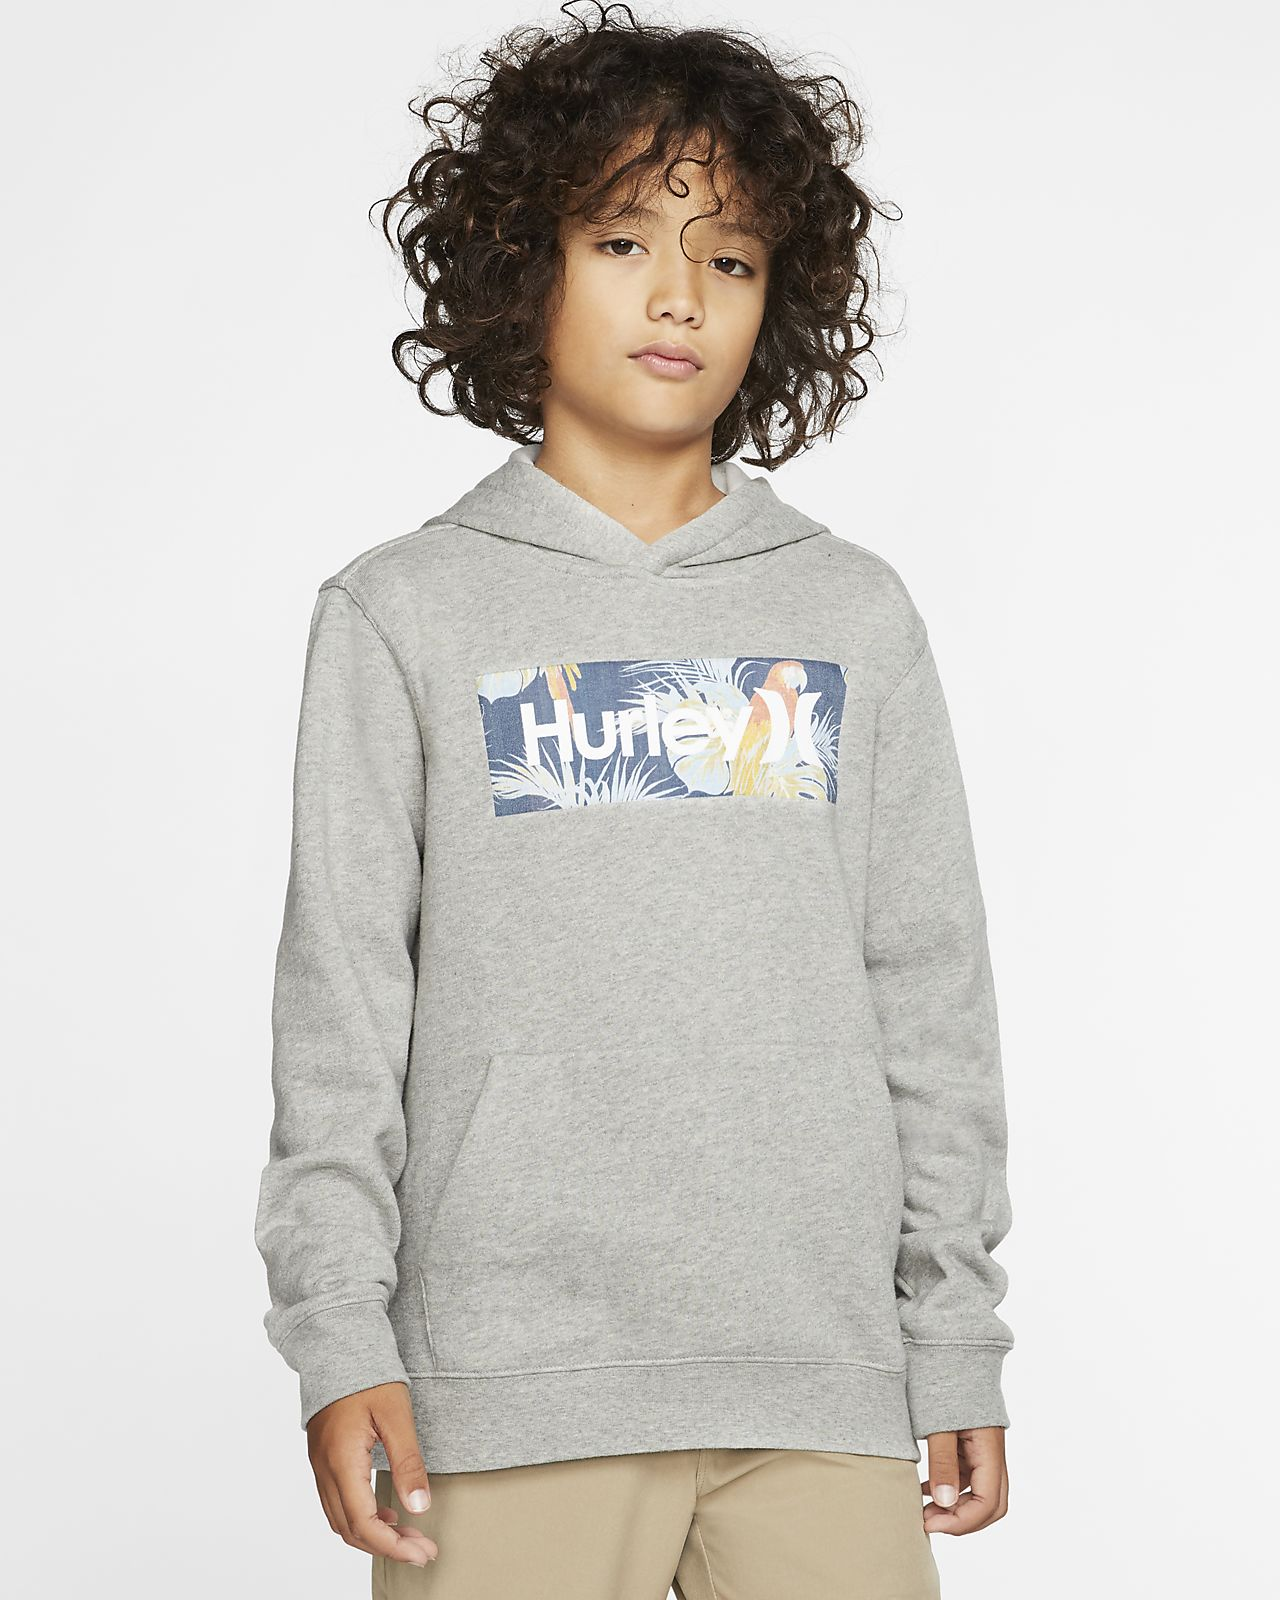 Hurley One And Only Boxed Sierra Boys' Fleece Pullover Hoodie